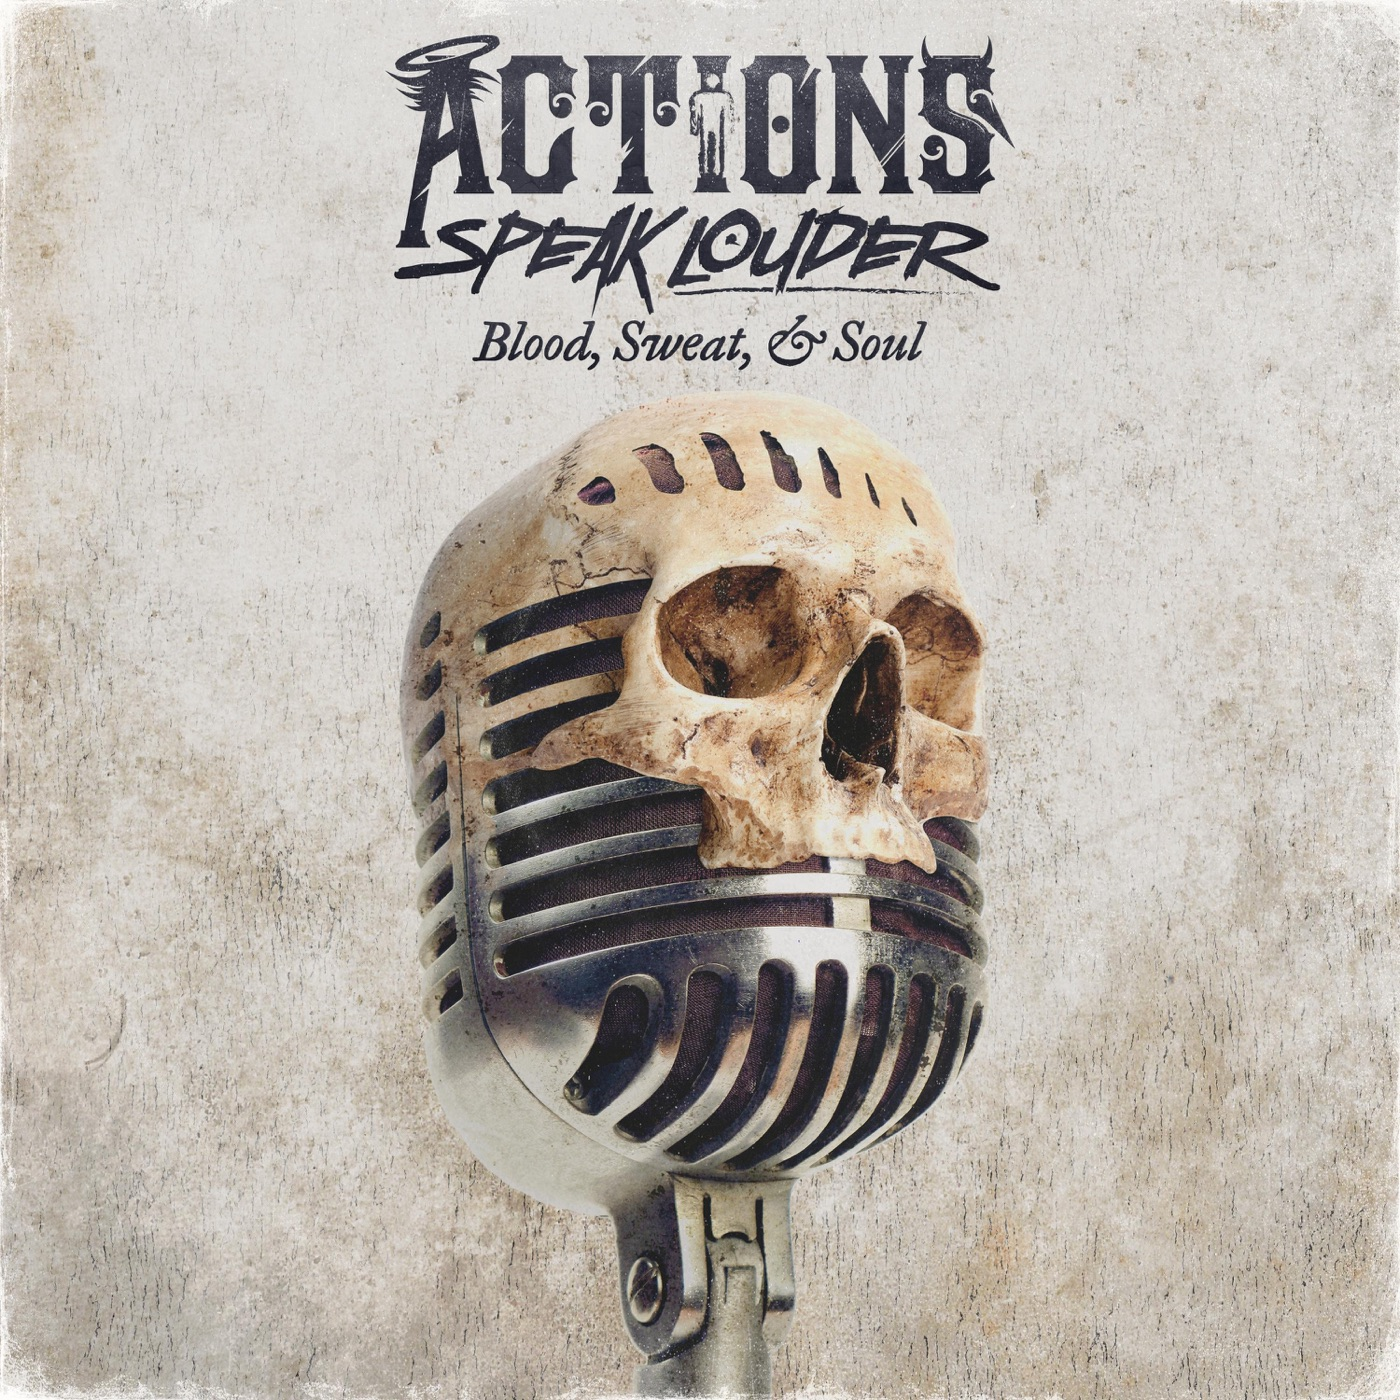 Actions Speak Louder - Blood, Sweat & Soul [single] (2019)